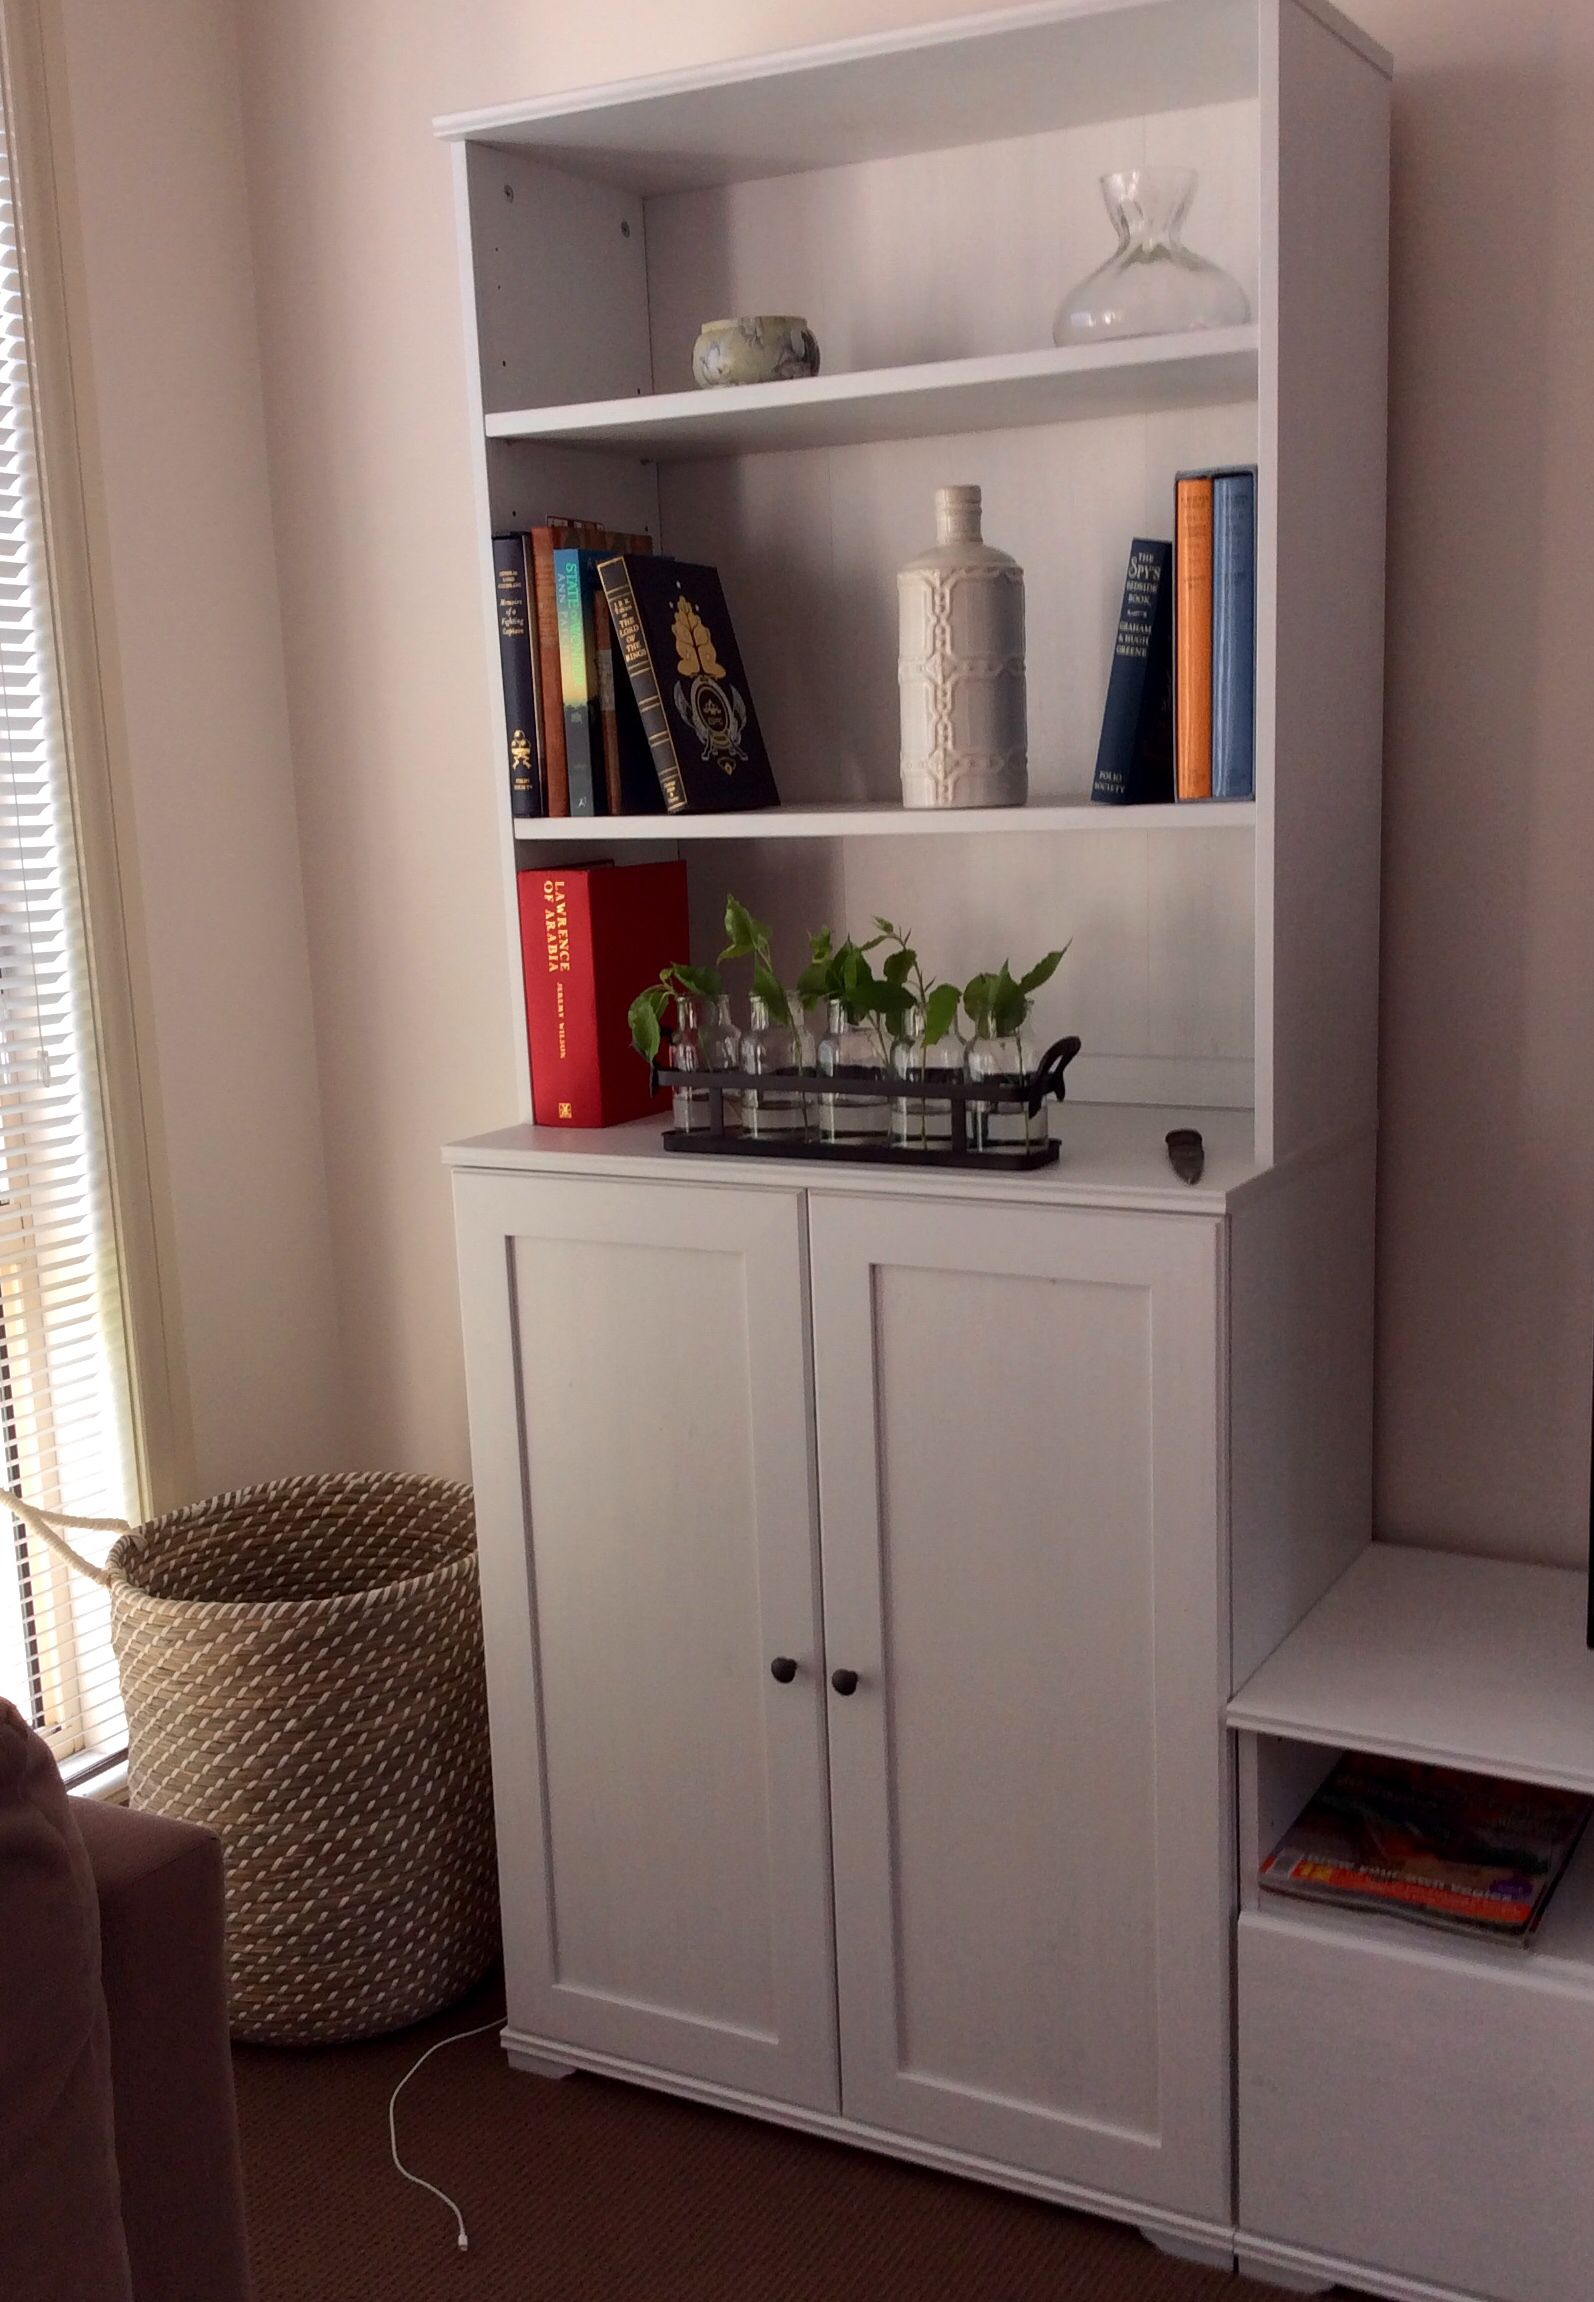 Borgsjo Bookcases From IKEA